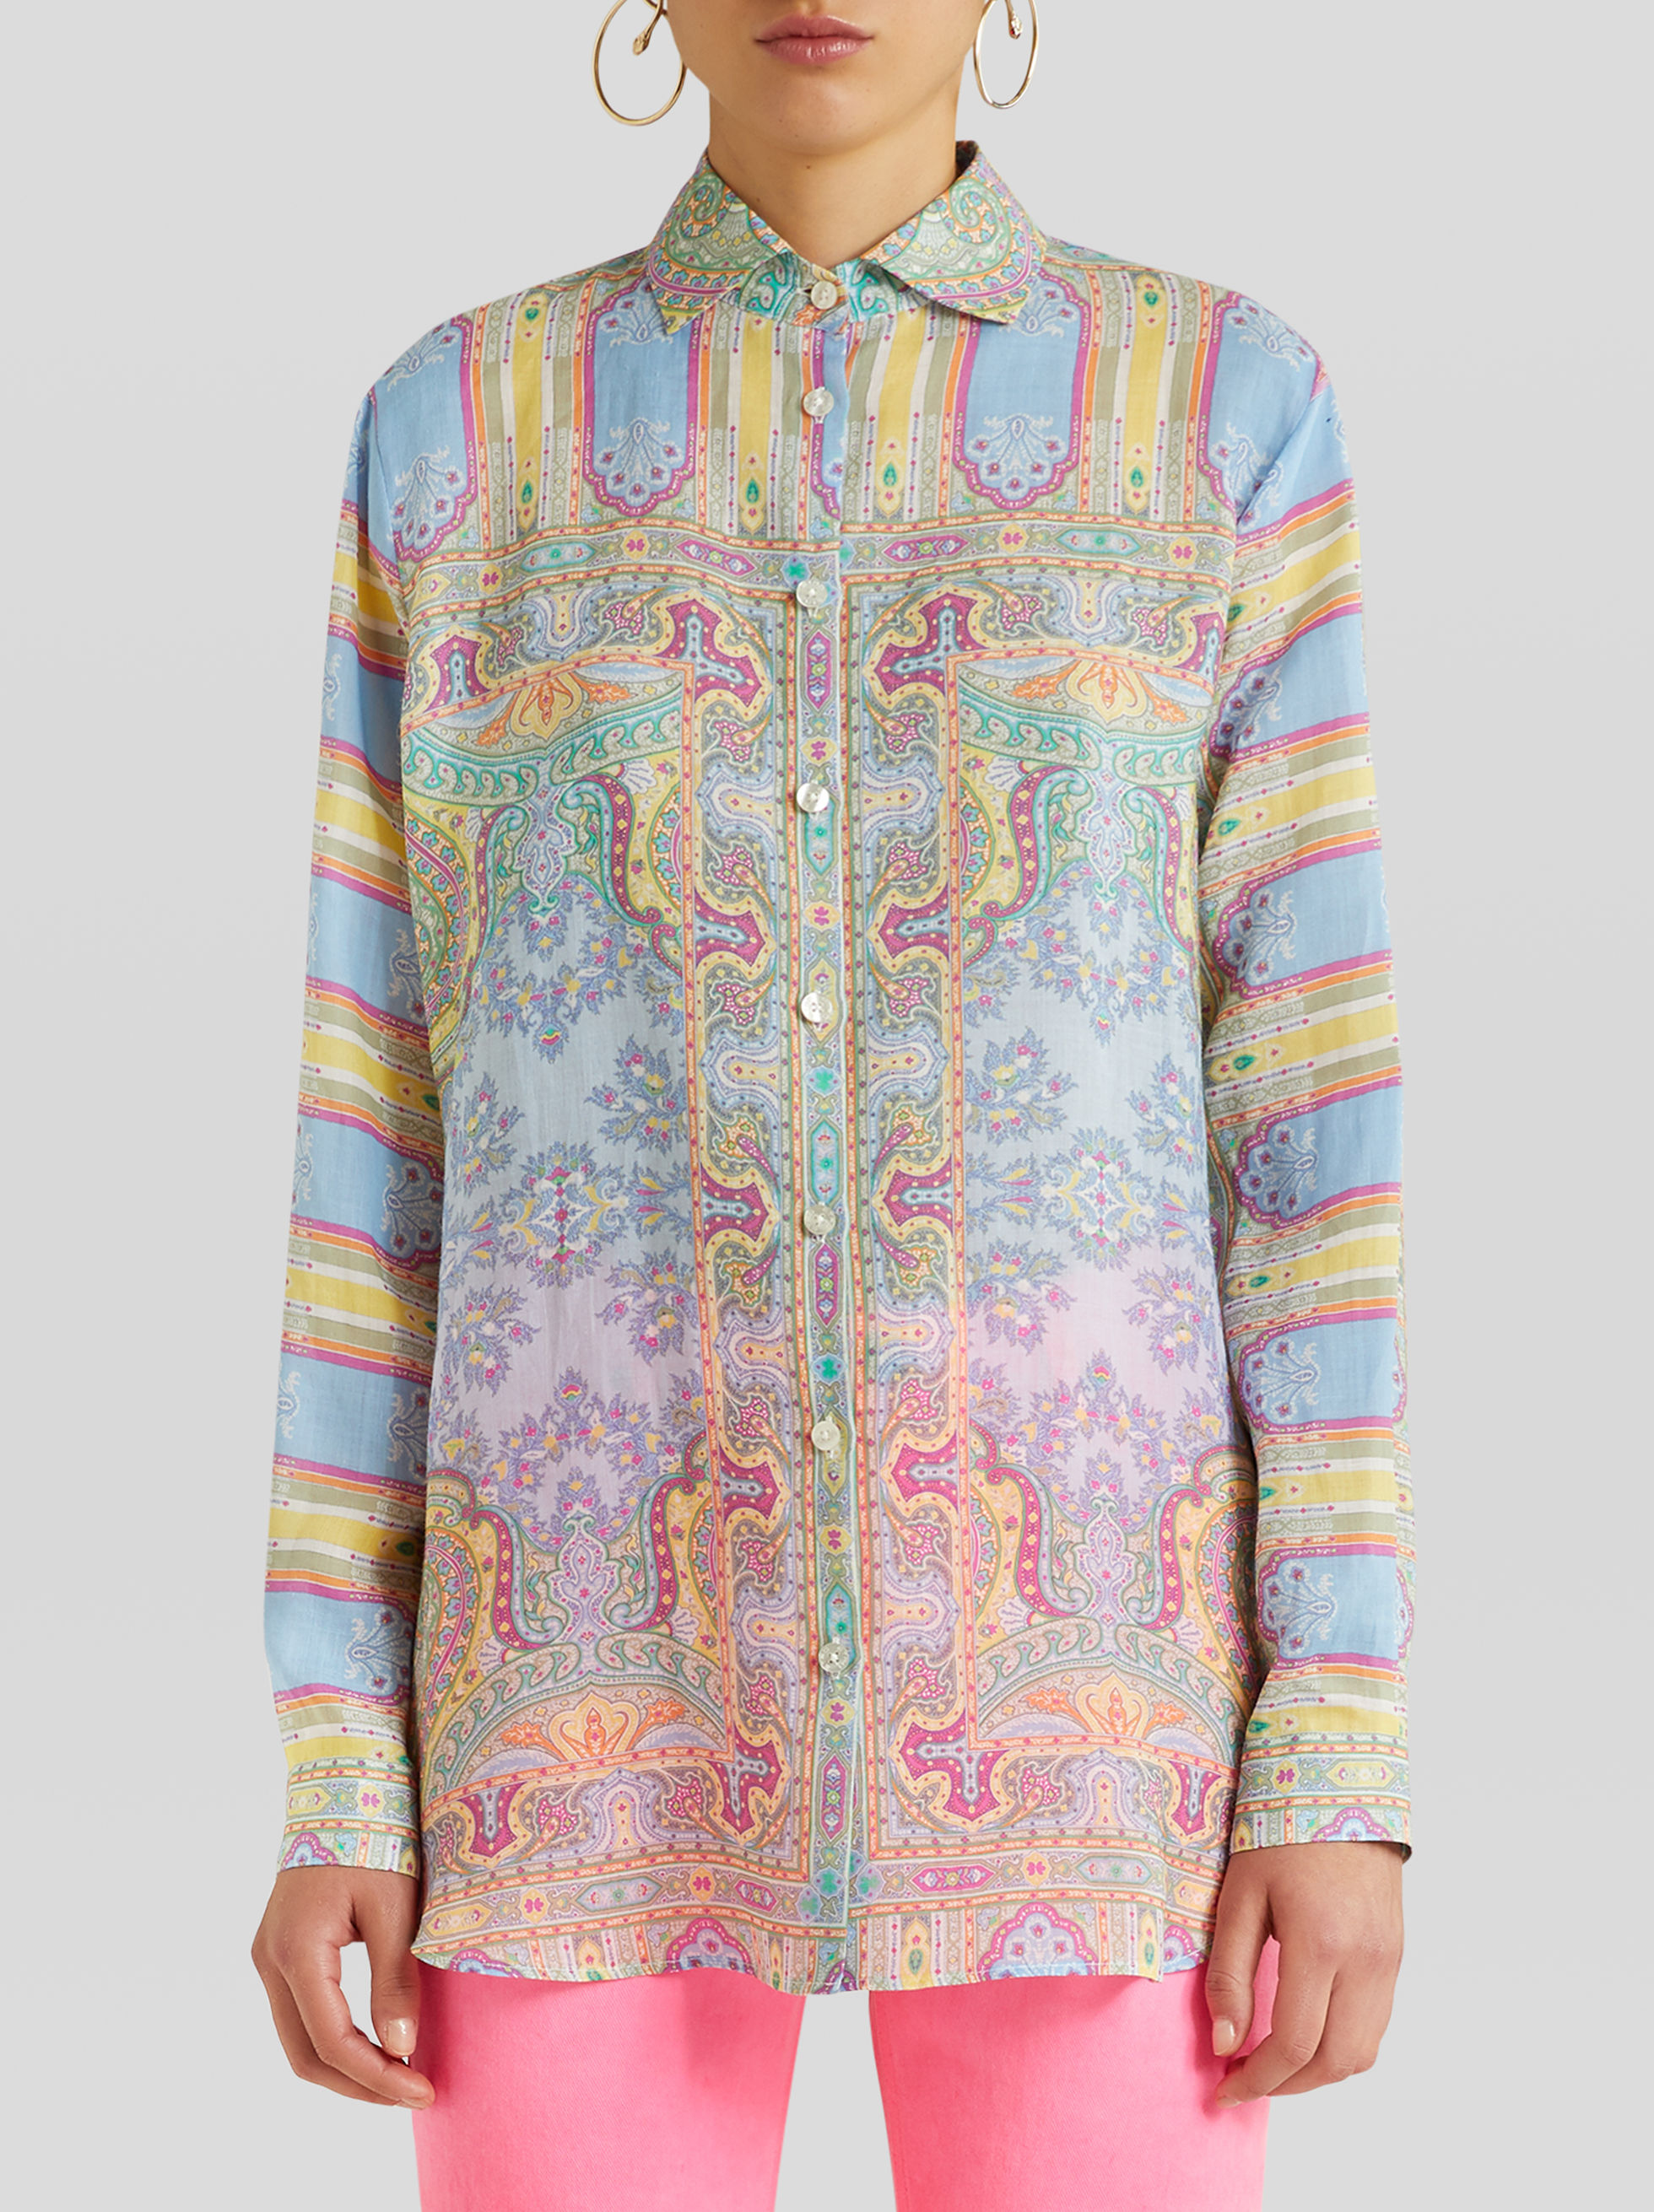 ORNAMENTAL PAISLEY PRINT SHIRT